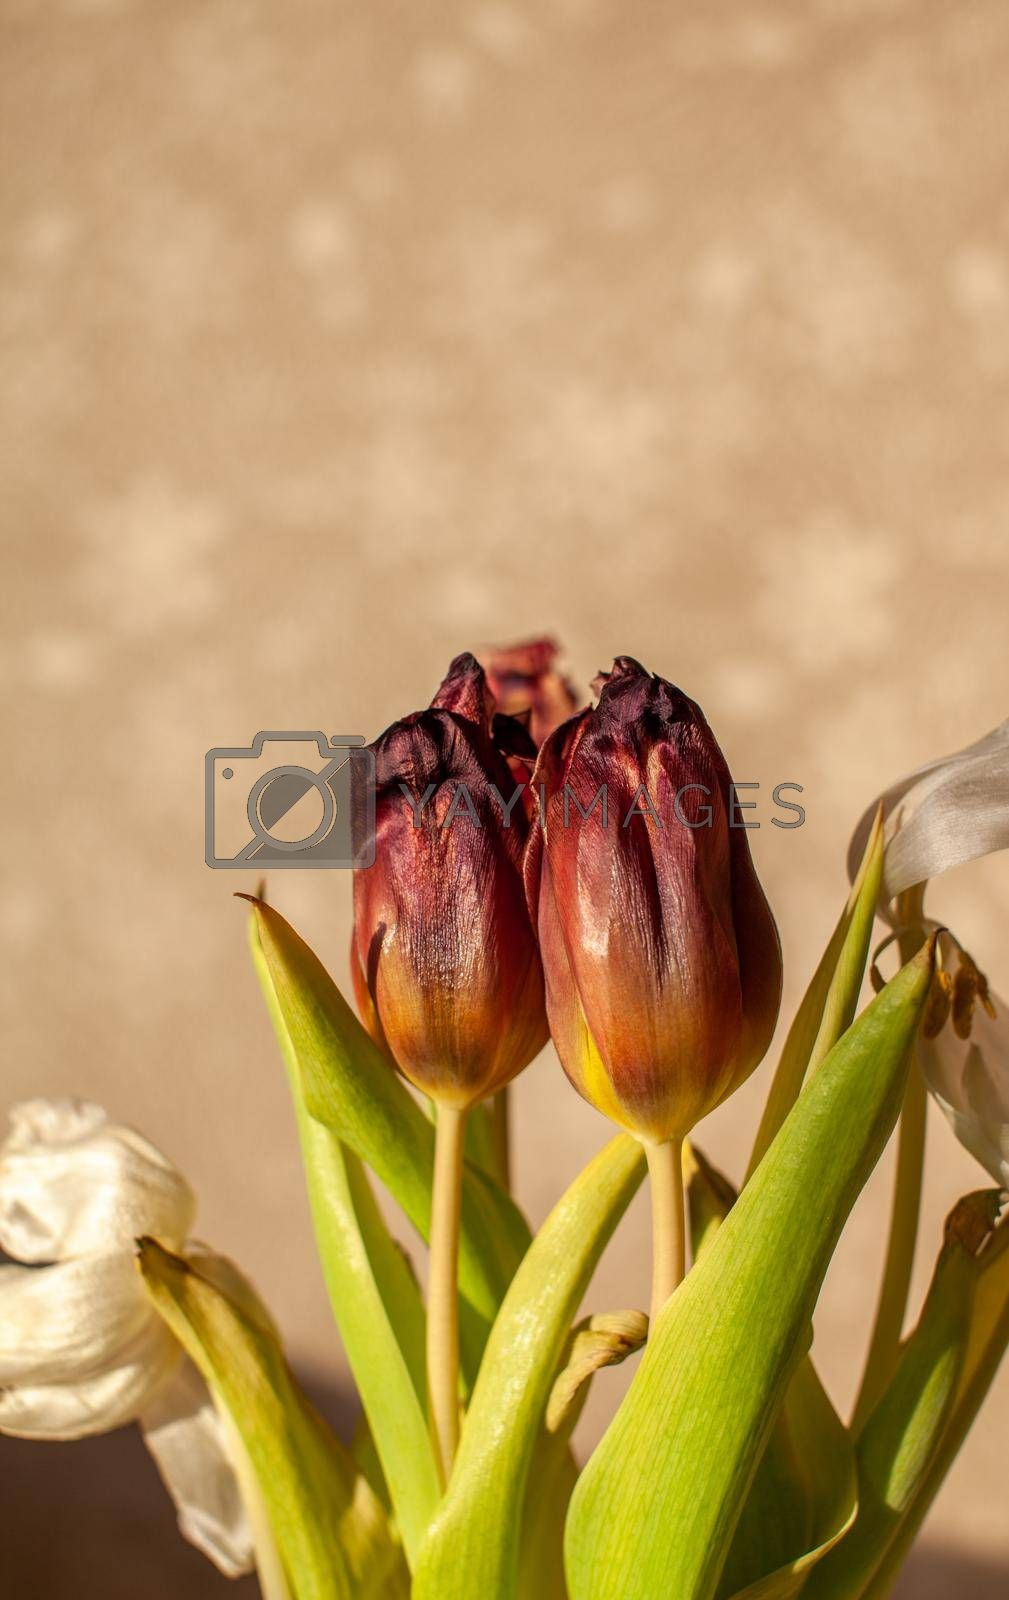 Flowers tulips at home in the warm rays of the winter sun. Beautiful decor and greeting card.